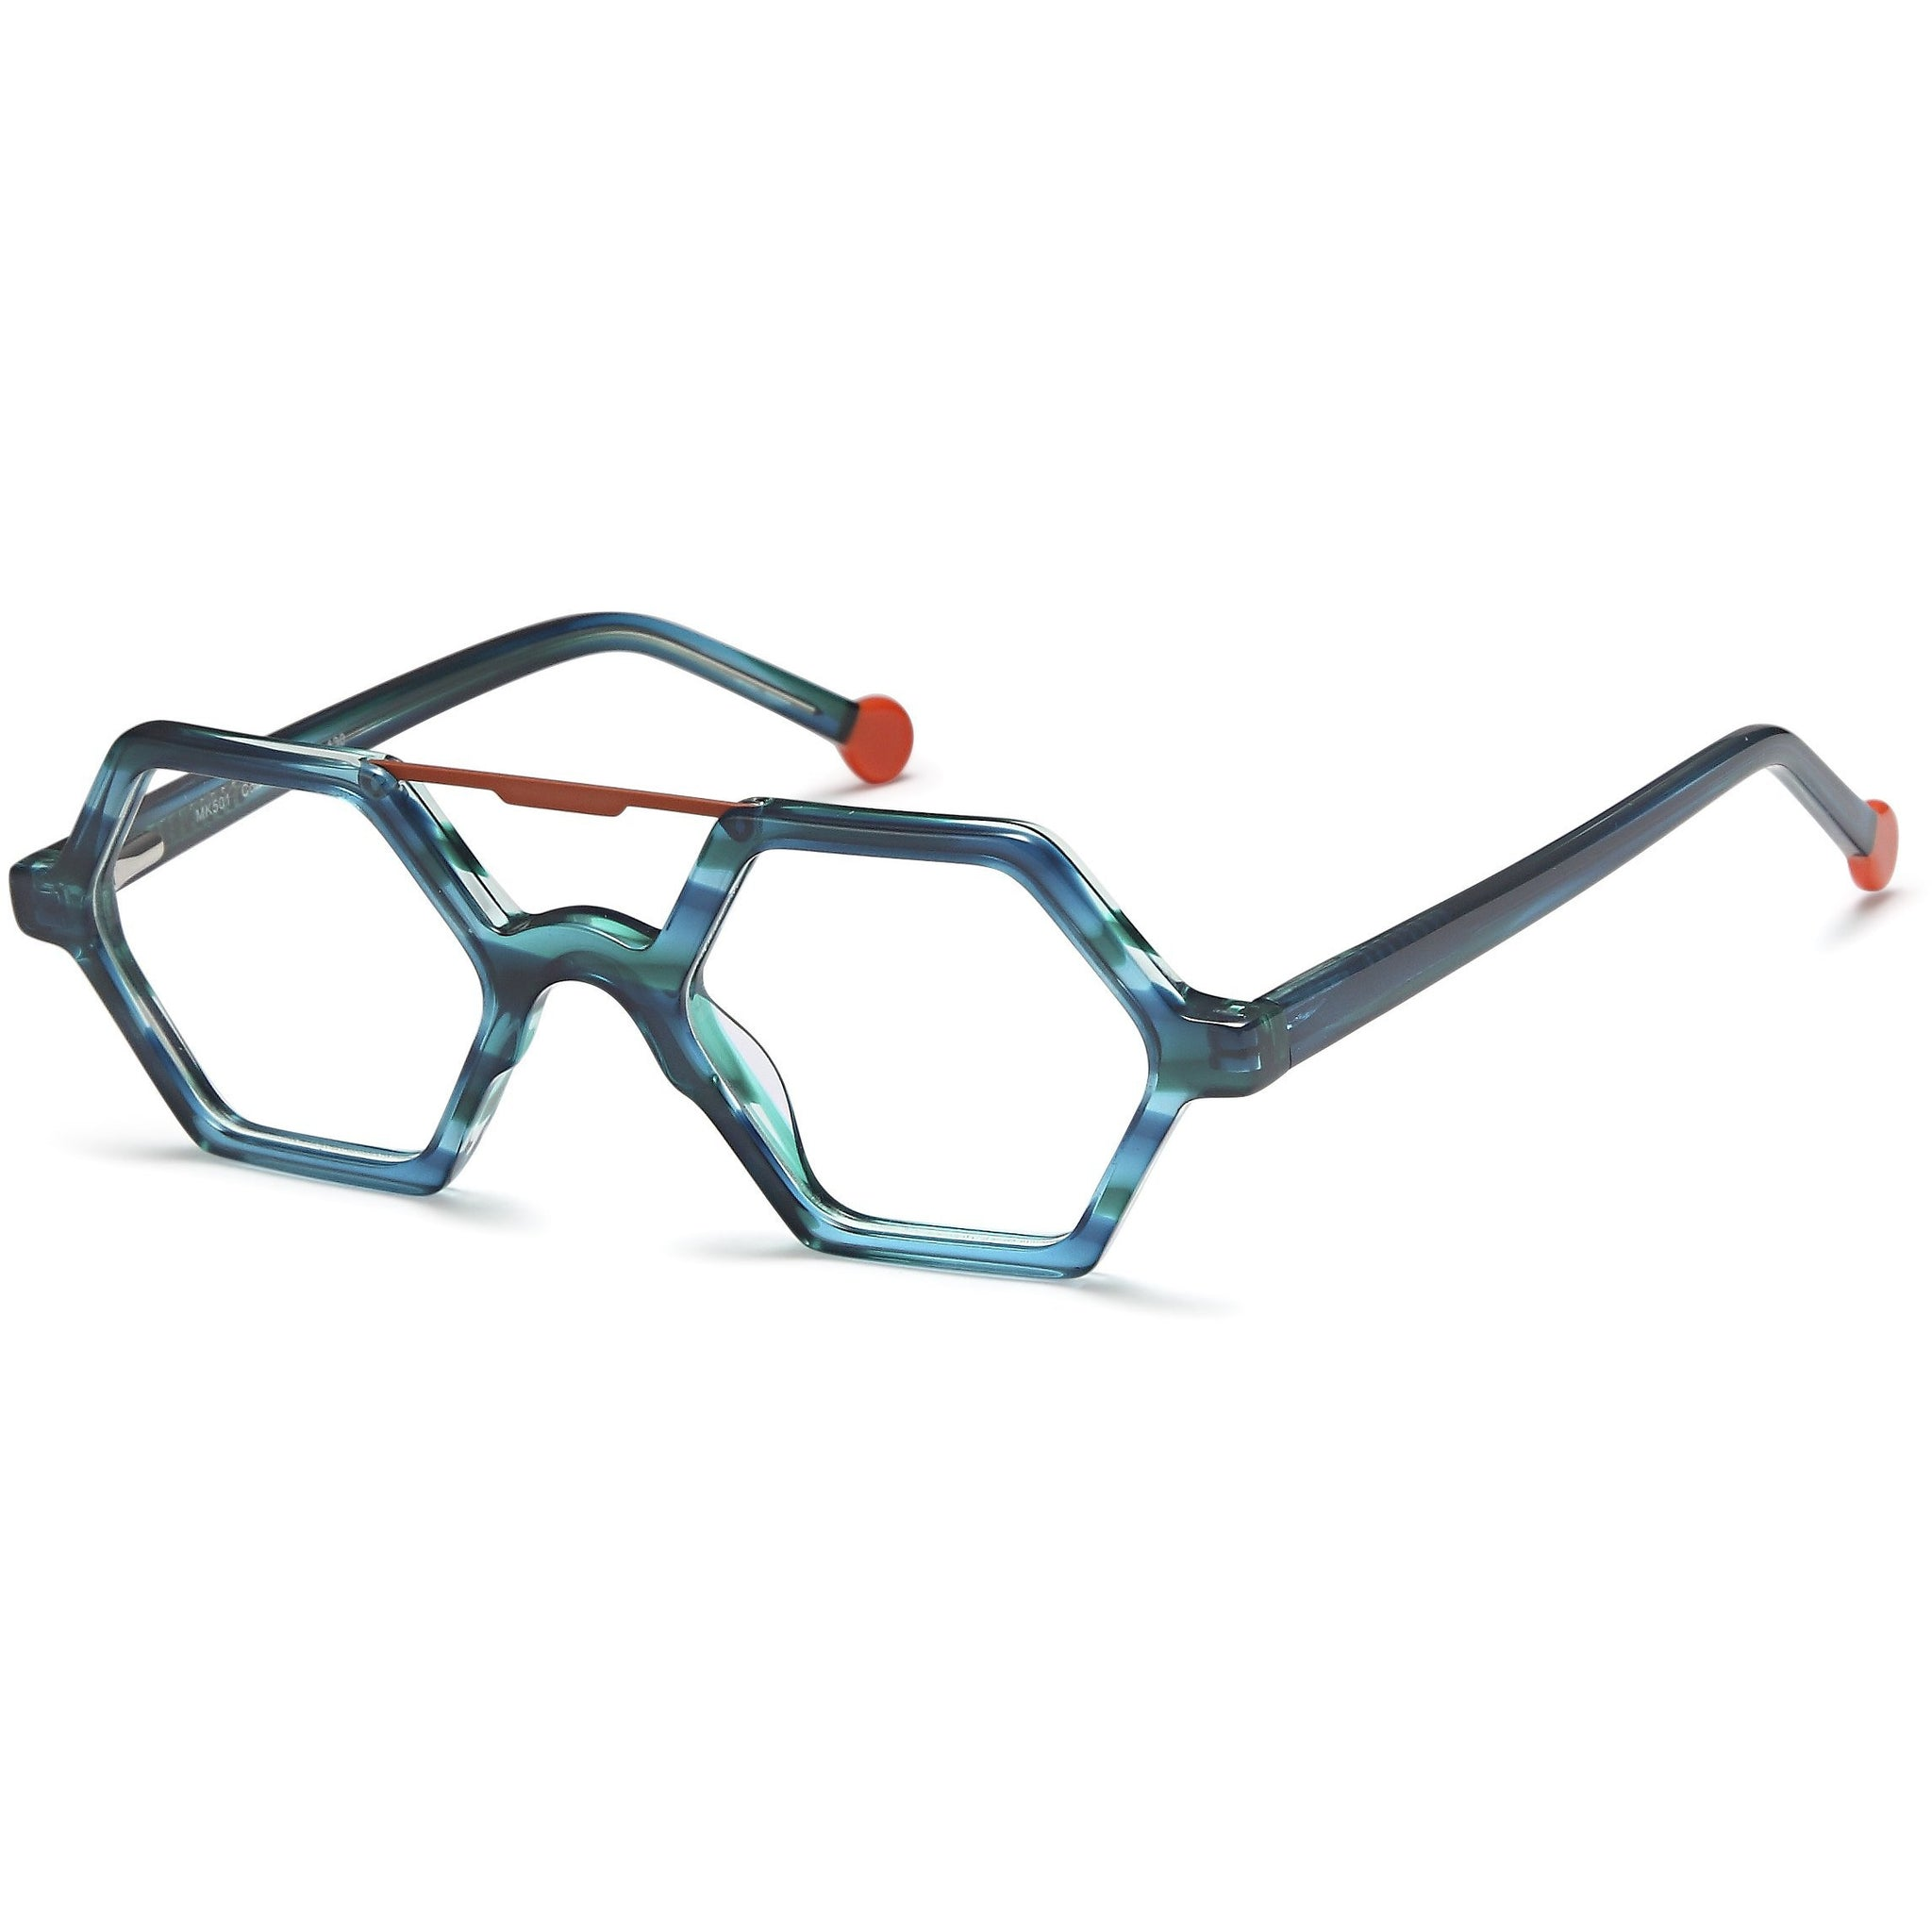 Menizzi Kids Prescription Glasses MK501 Eyeglasses Frames